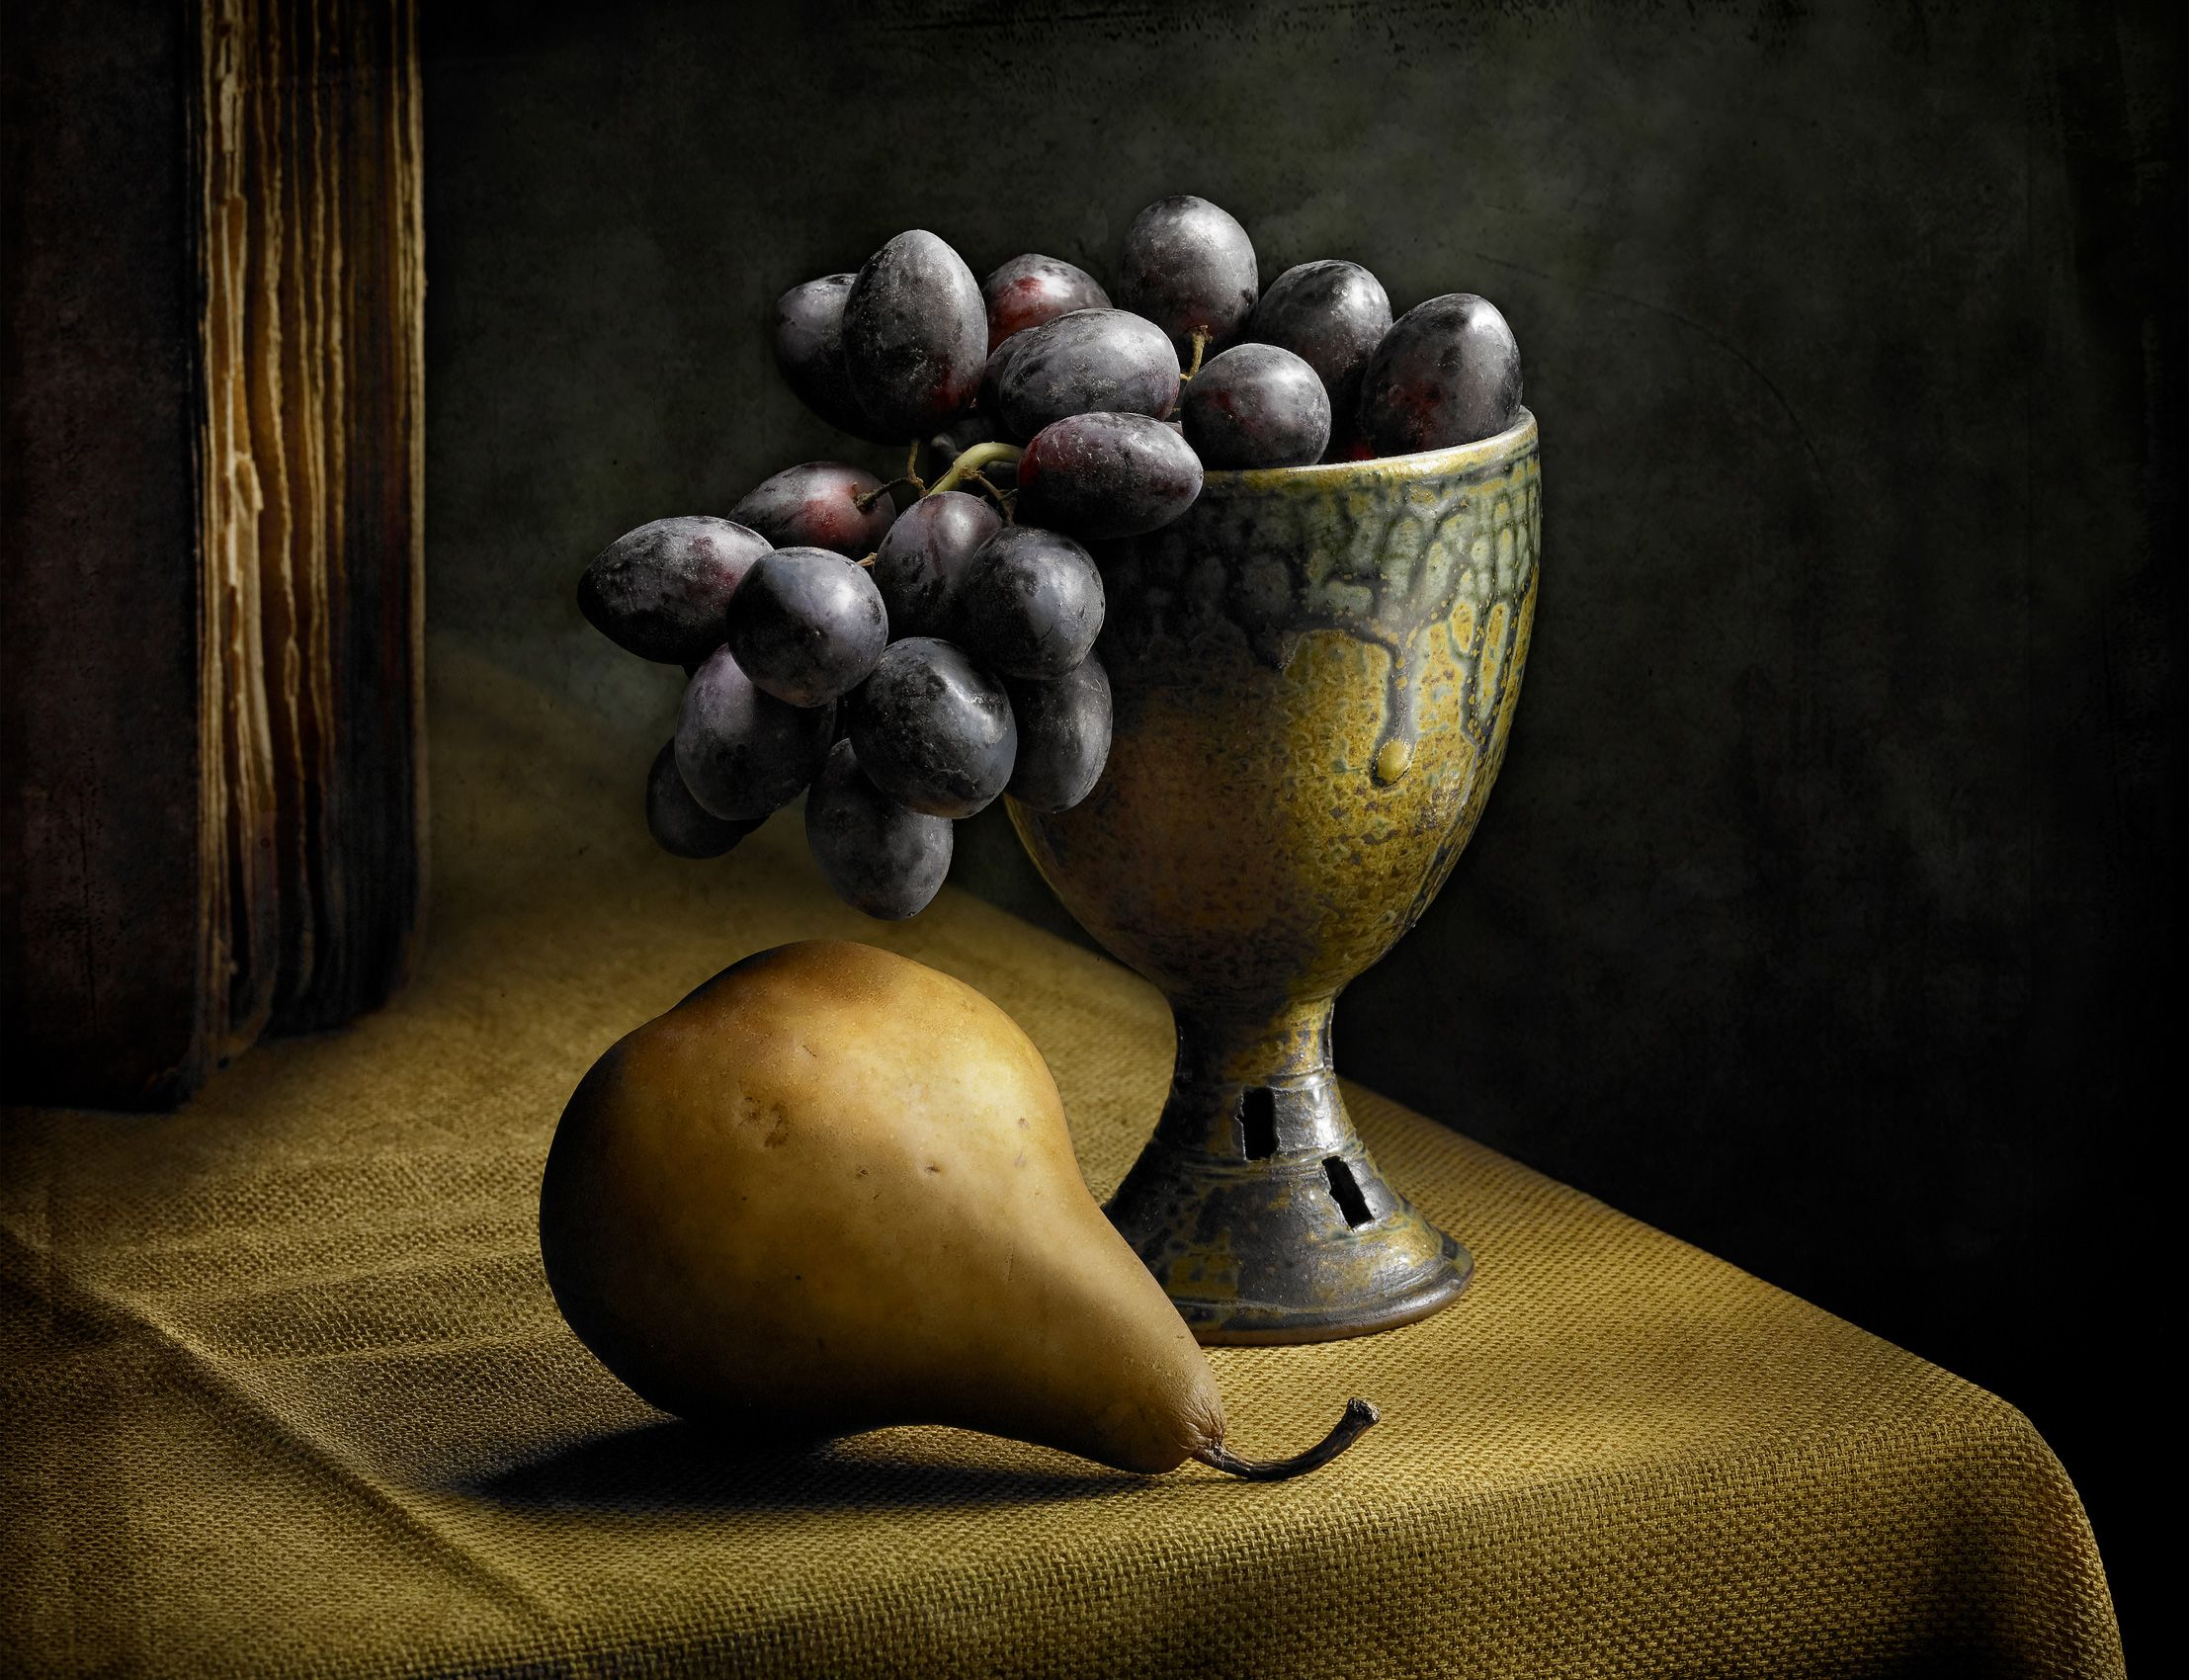 Still Life with Grapes by Harold Ross